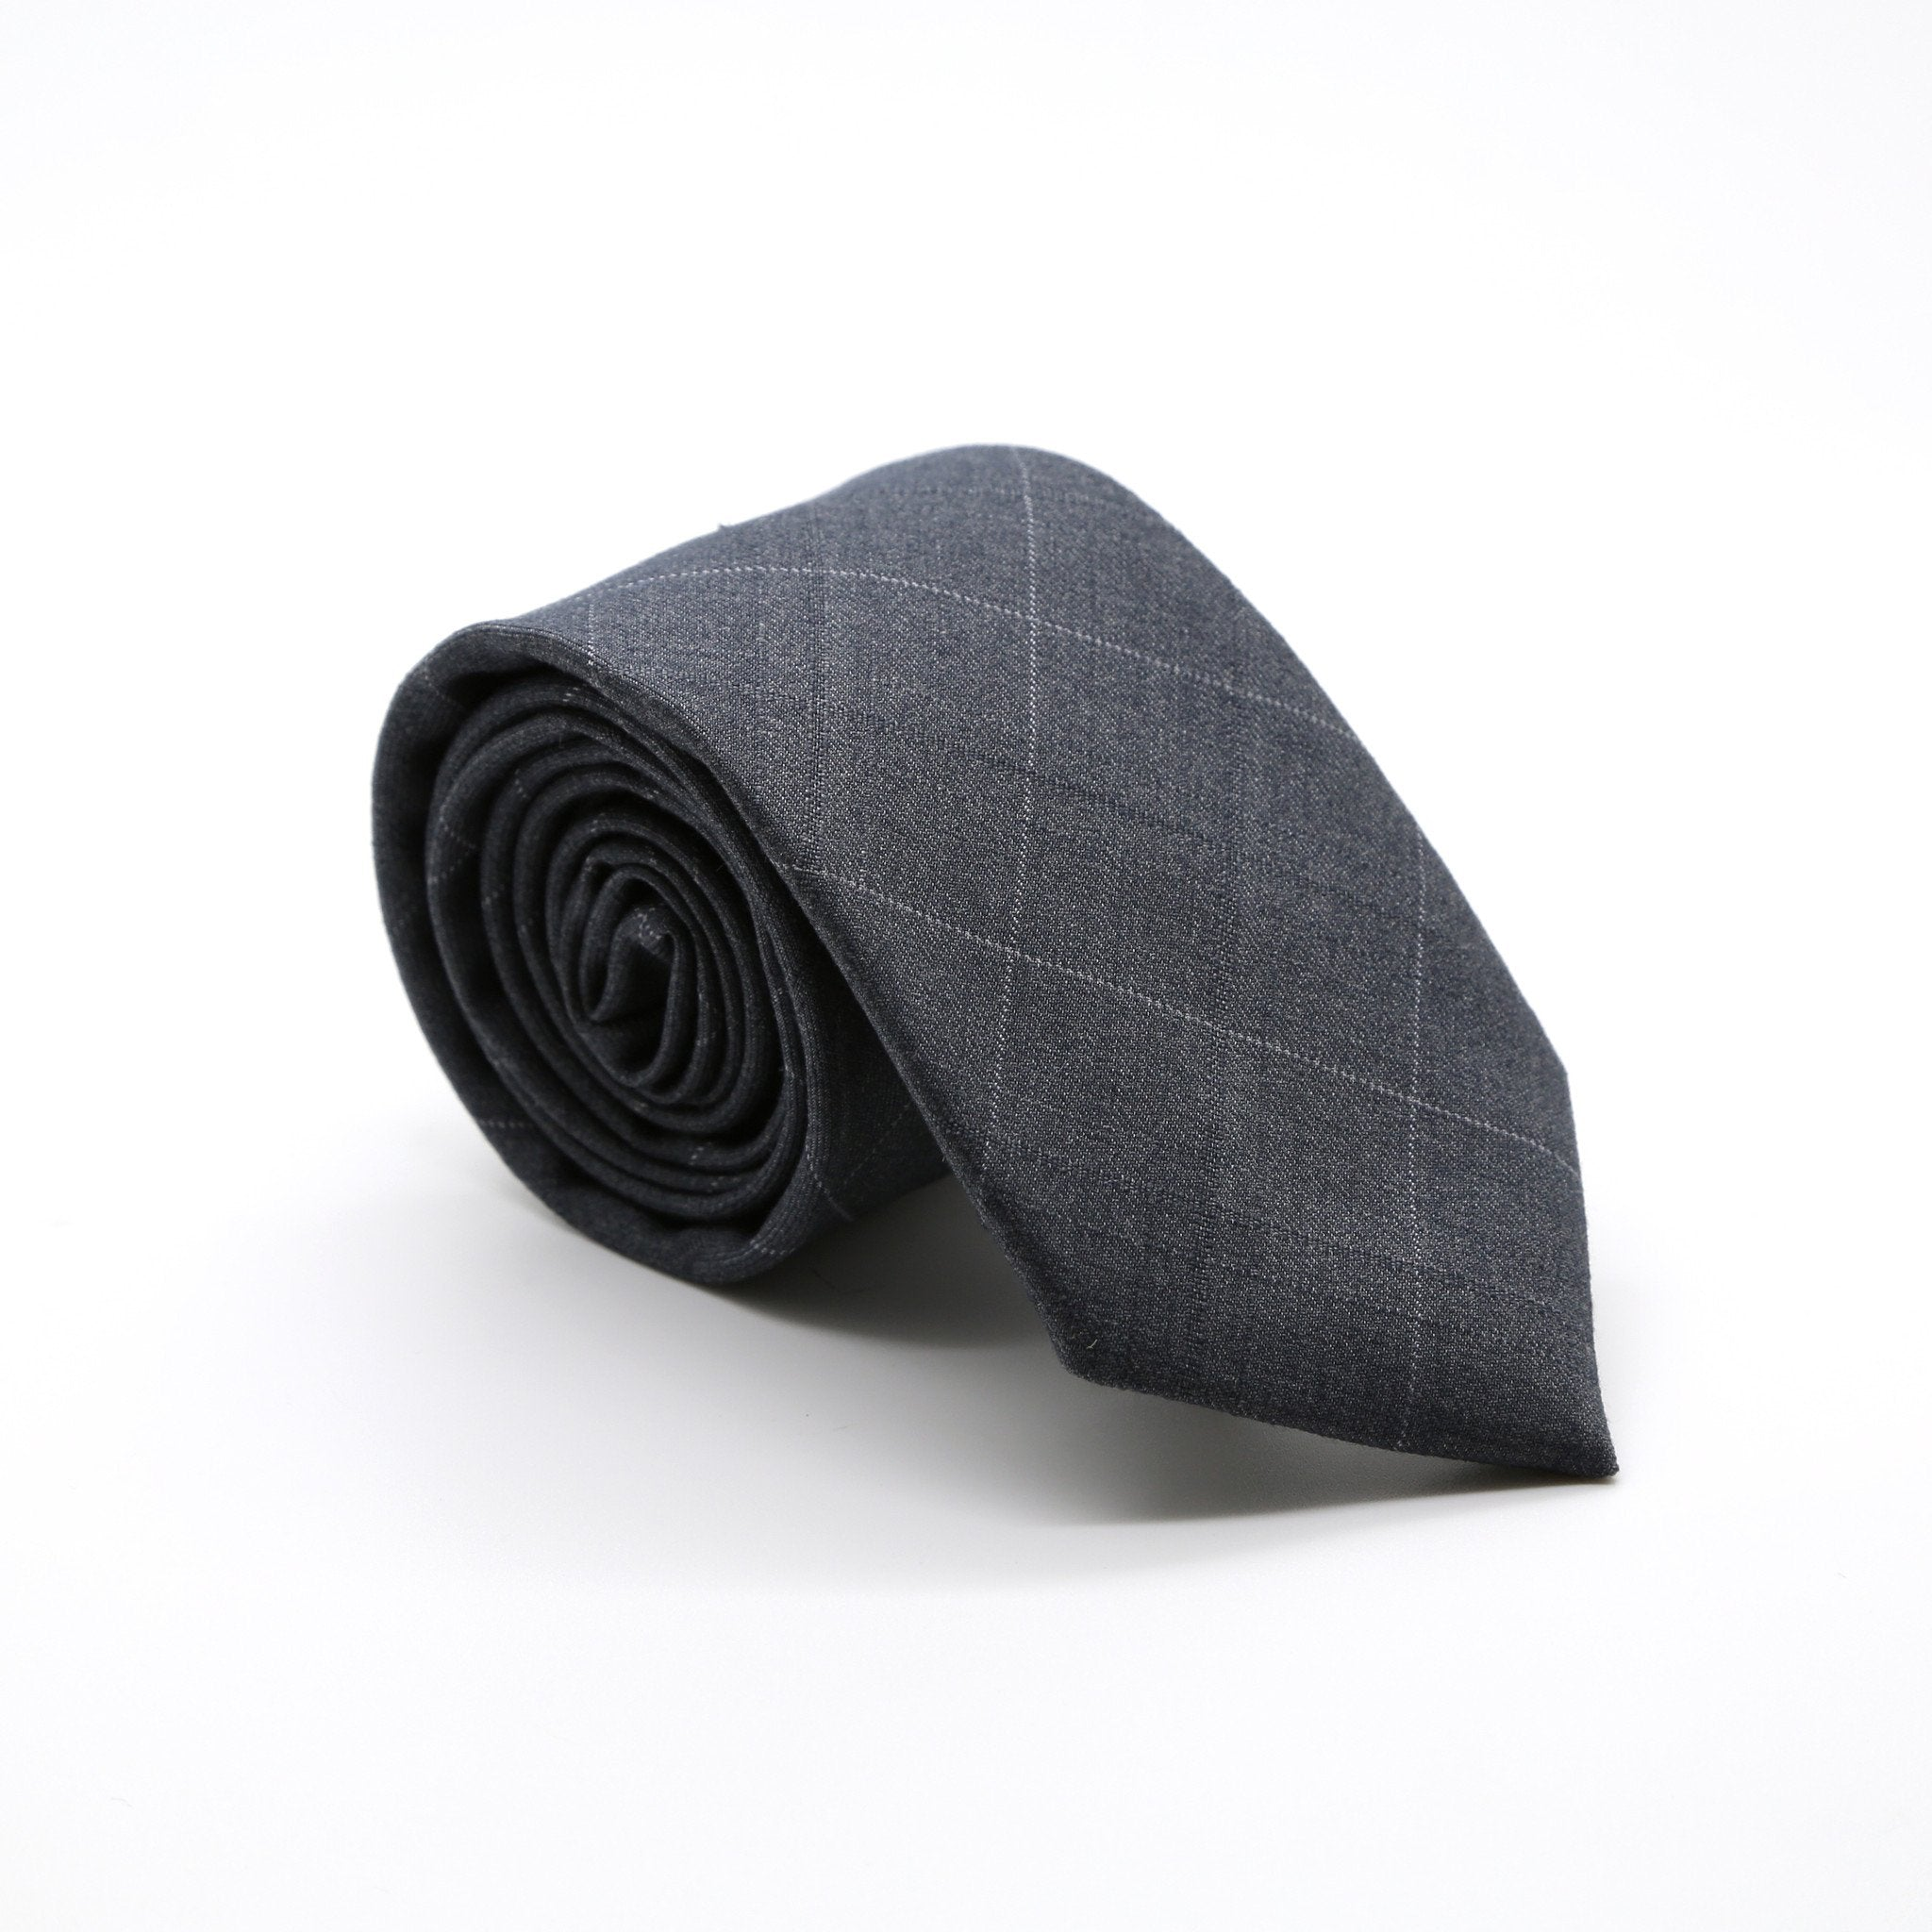 Slim Grey Plaid Neckties & Handkerchief - Giorgio's Menswear